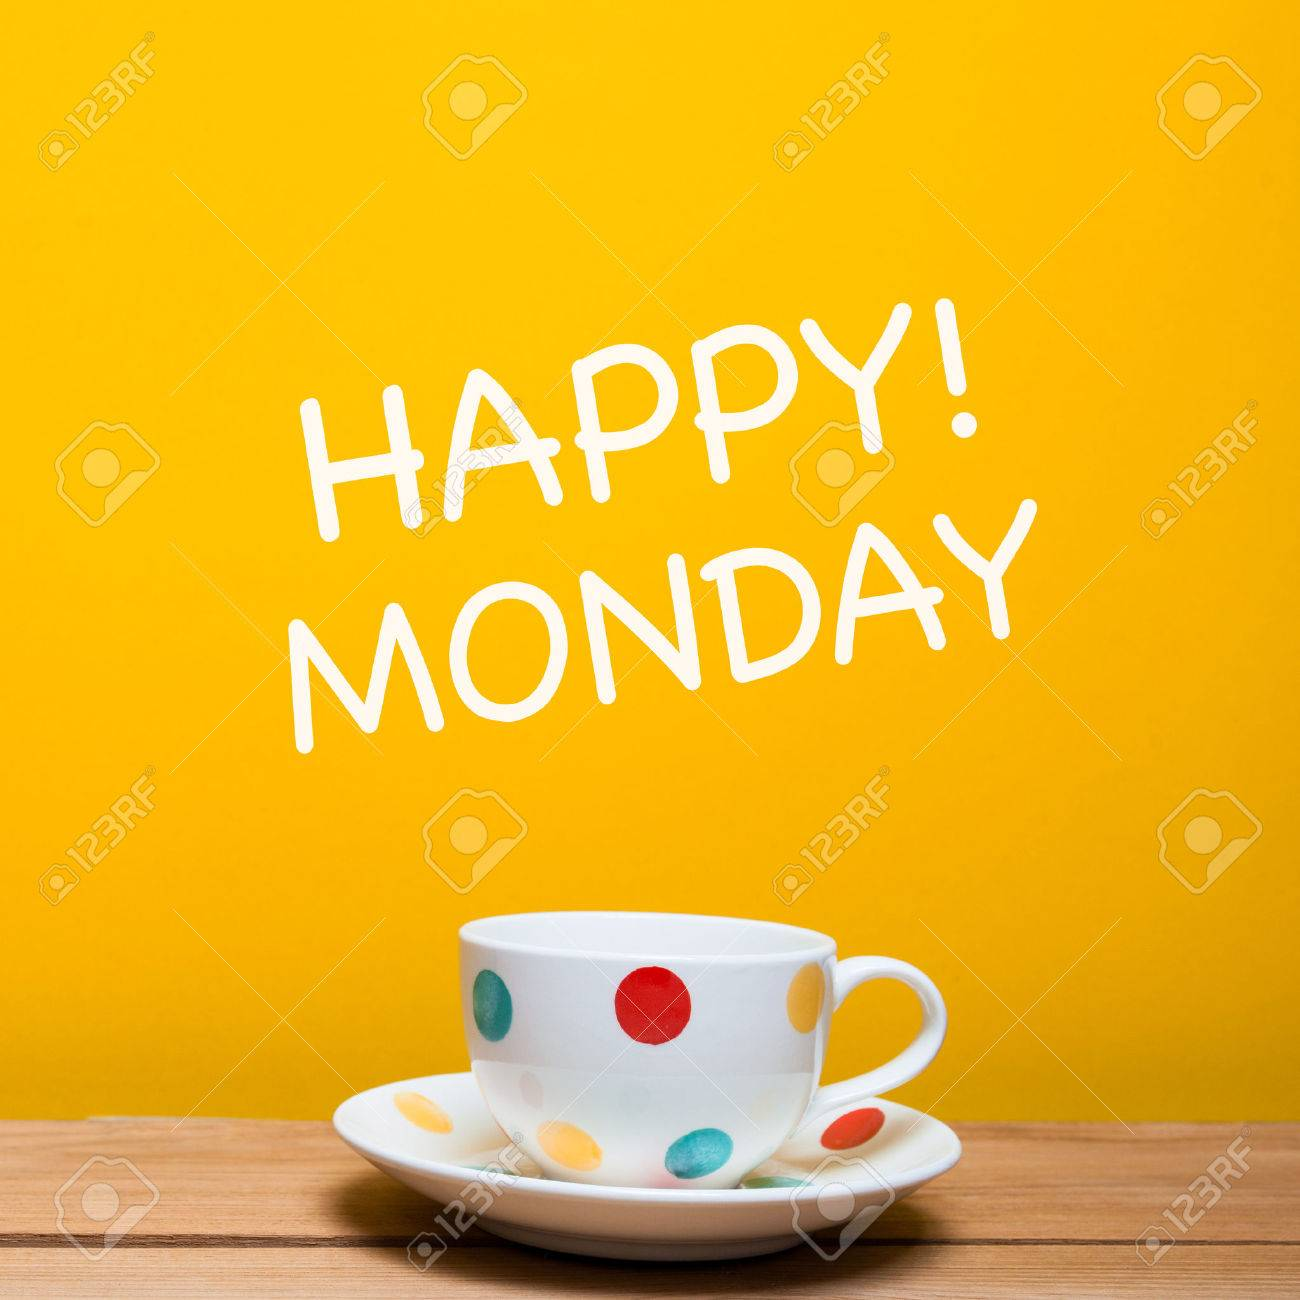 Happy Monday Word With Coffee Cup On Yellow Background Stock Photo